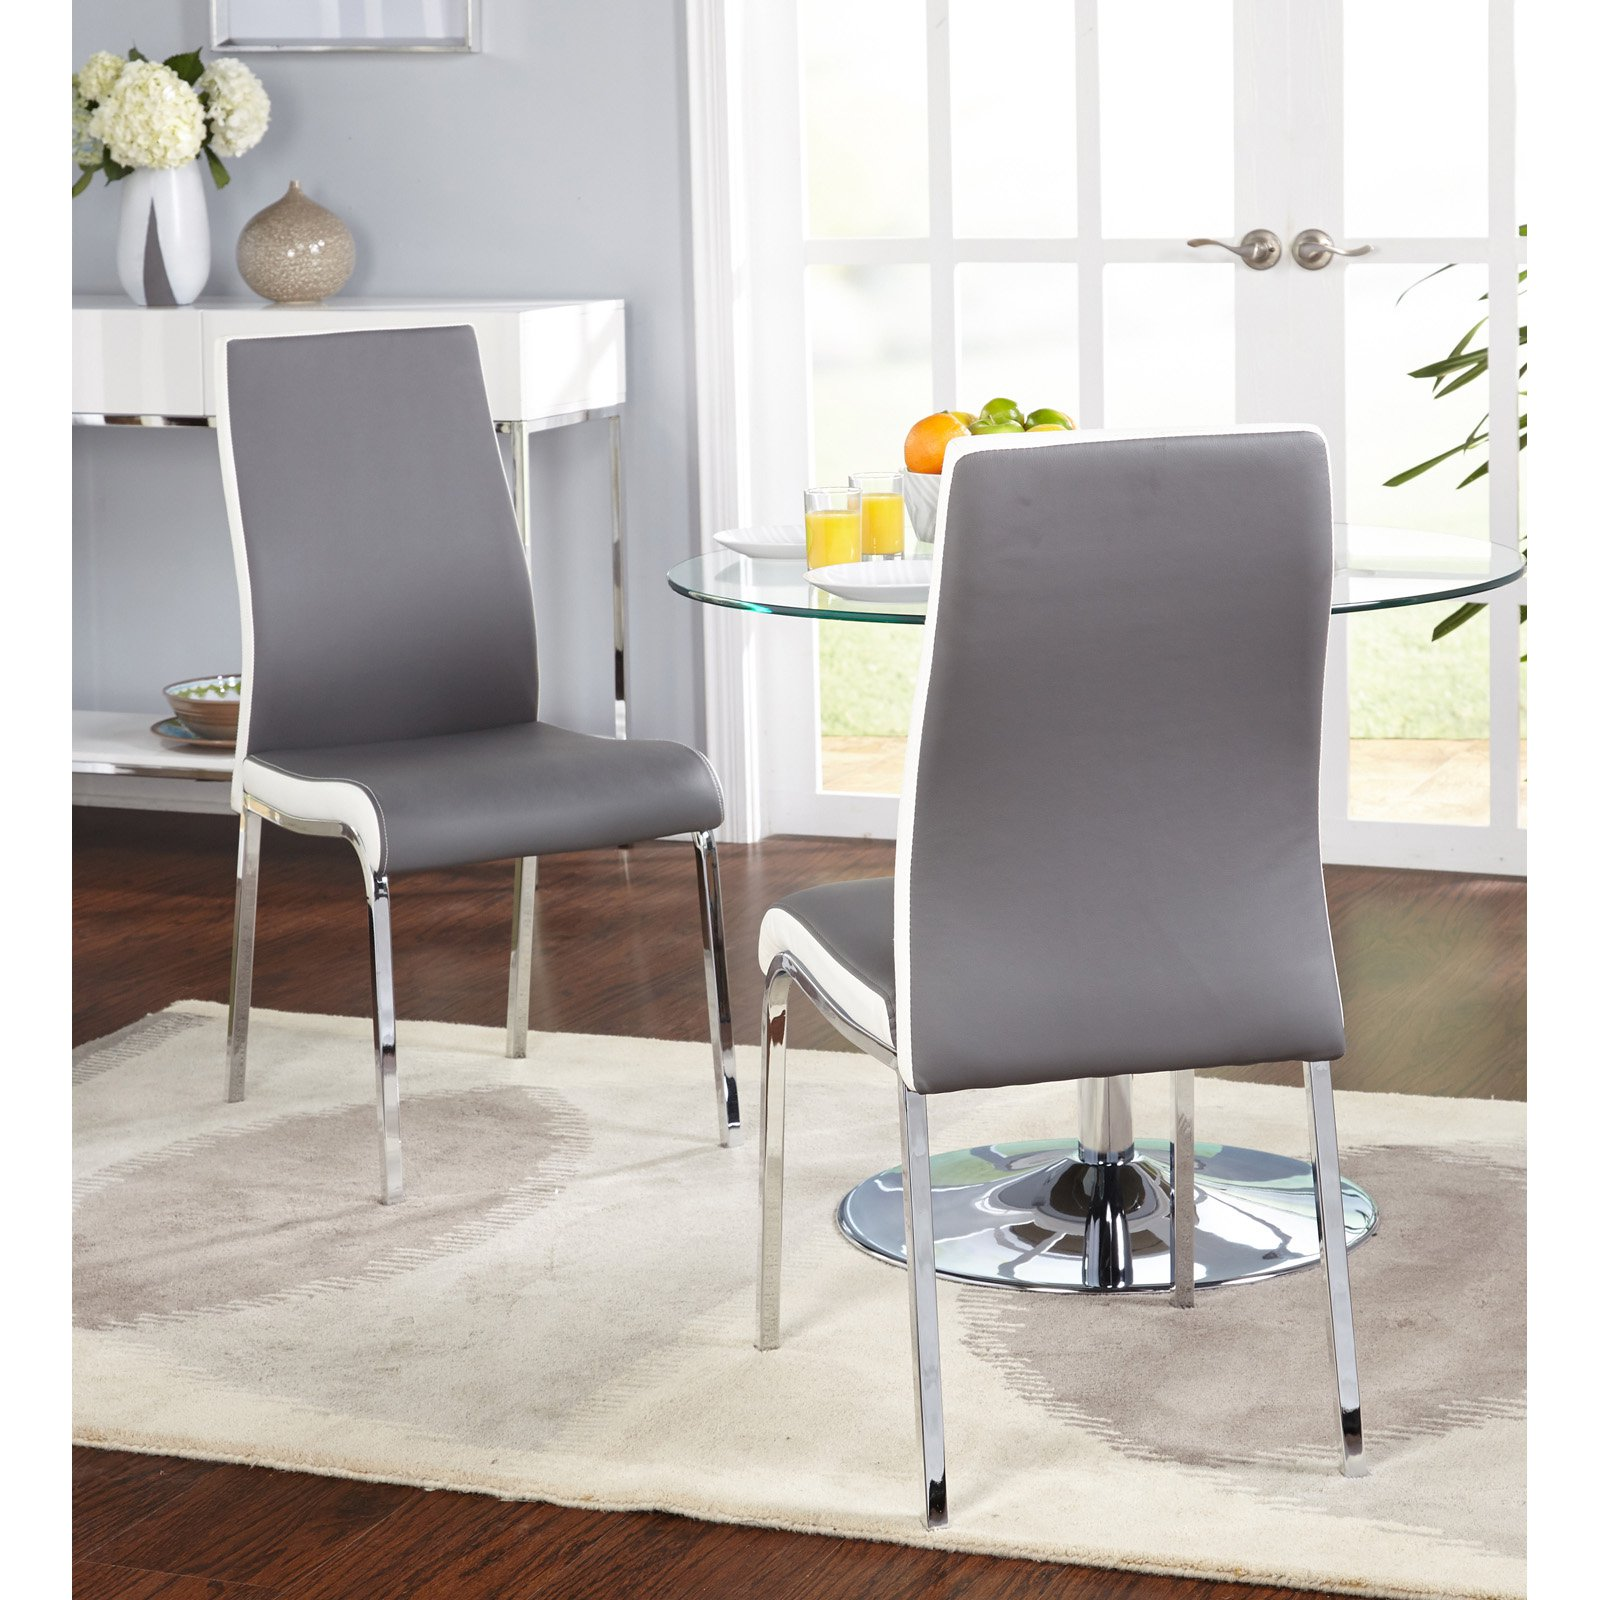 Nora Dining Chair, Set of 2, Gray/White